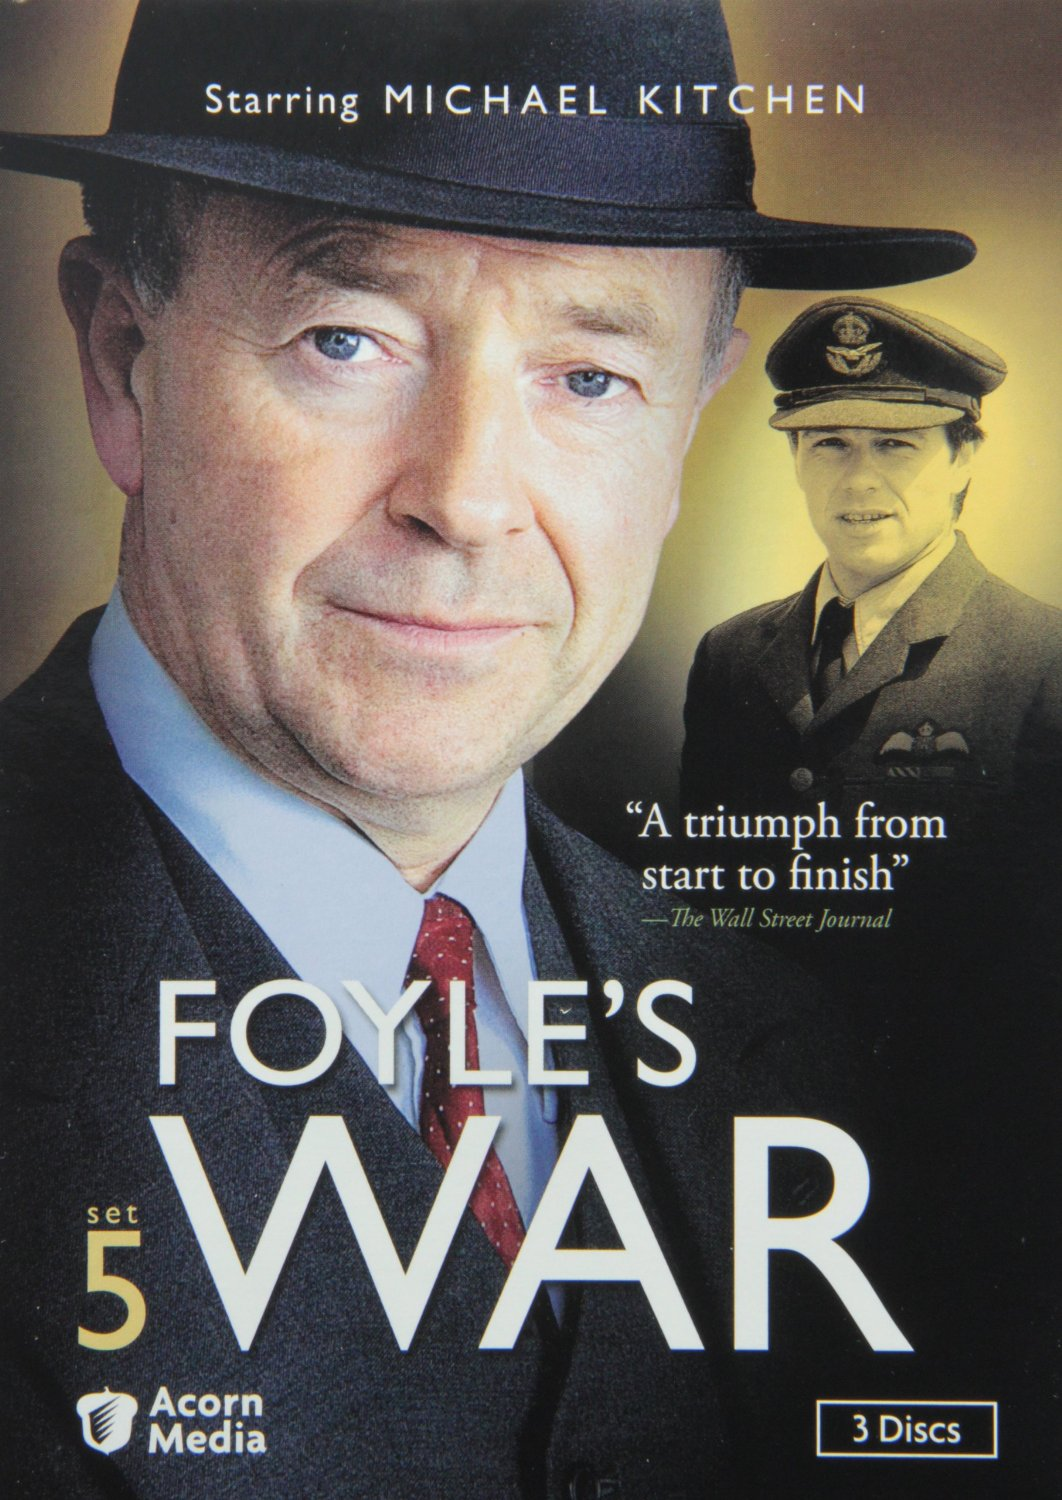 Michael Kitchen Is Christopher Foyle!